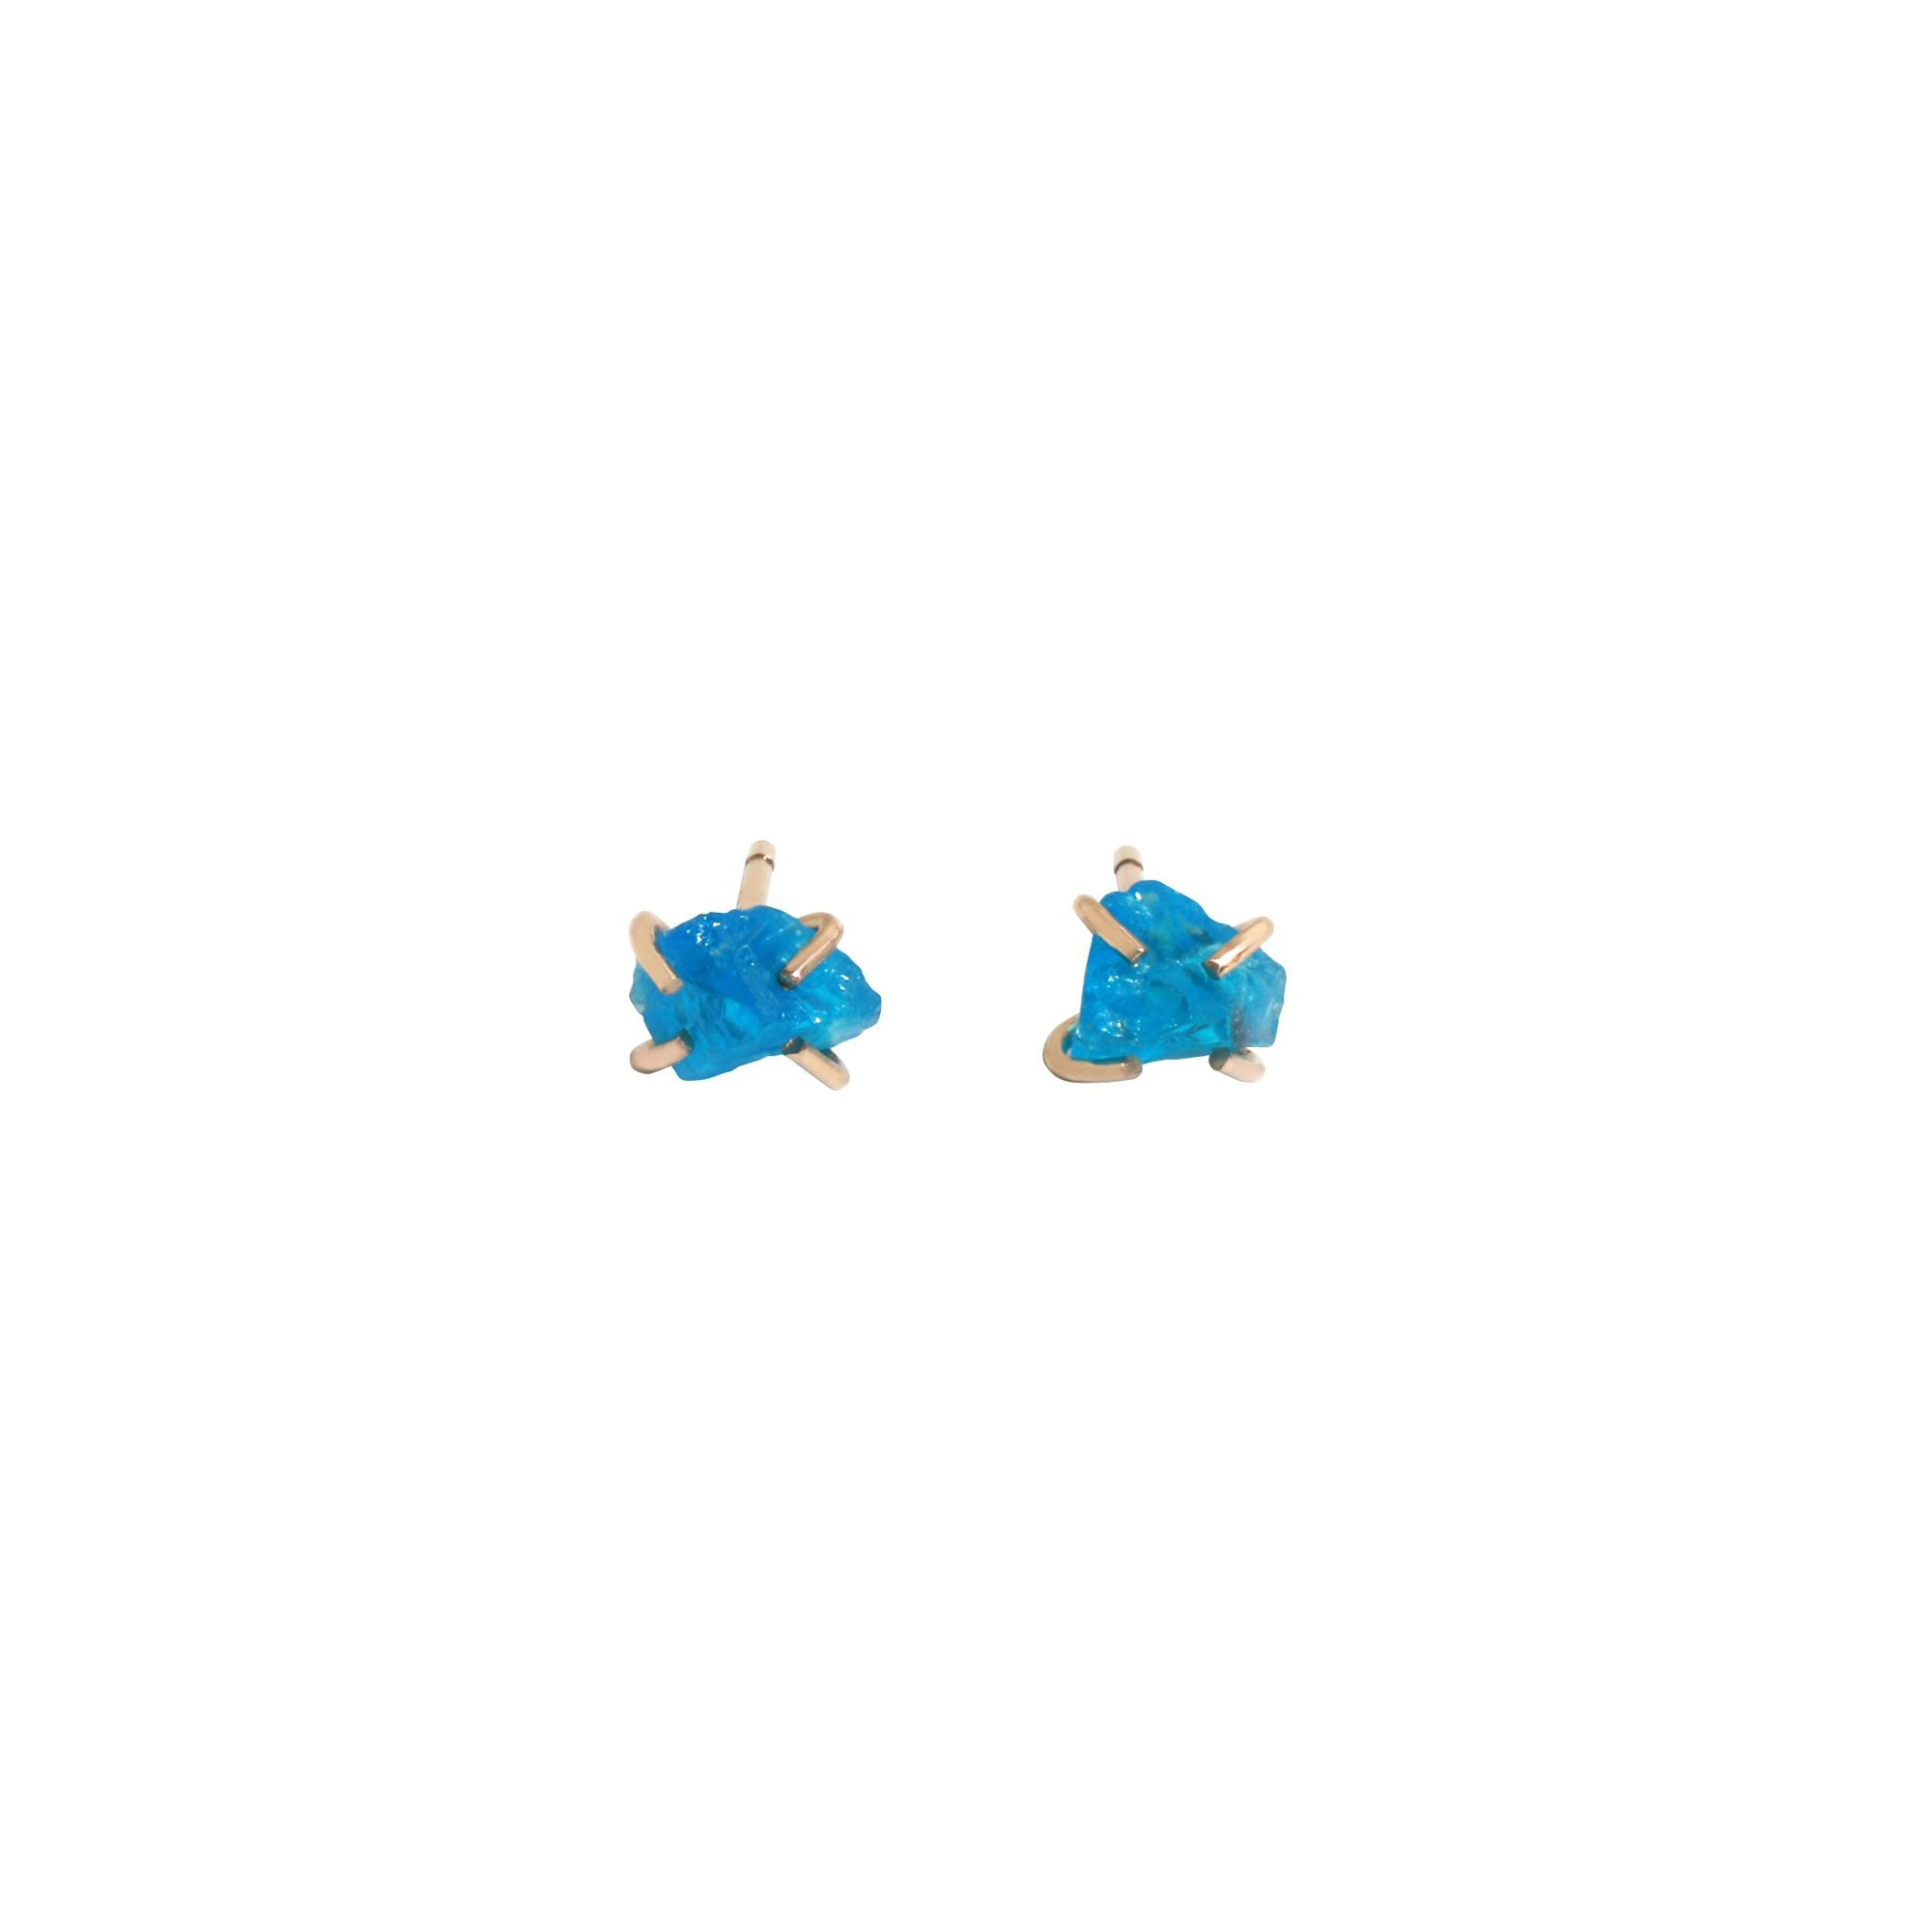 Melissa Joy Manning Prong Set Studs - Neon Apatite - Earrings - Broken English Jewelry